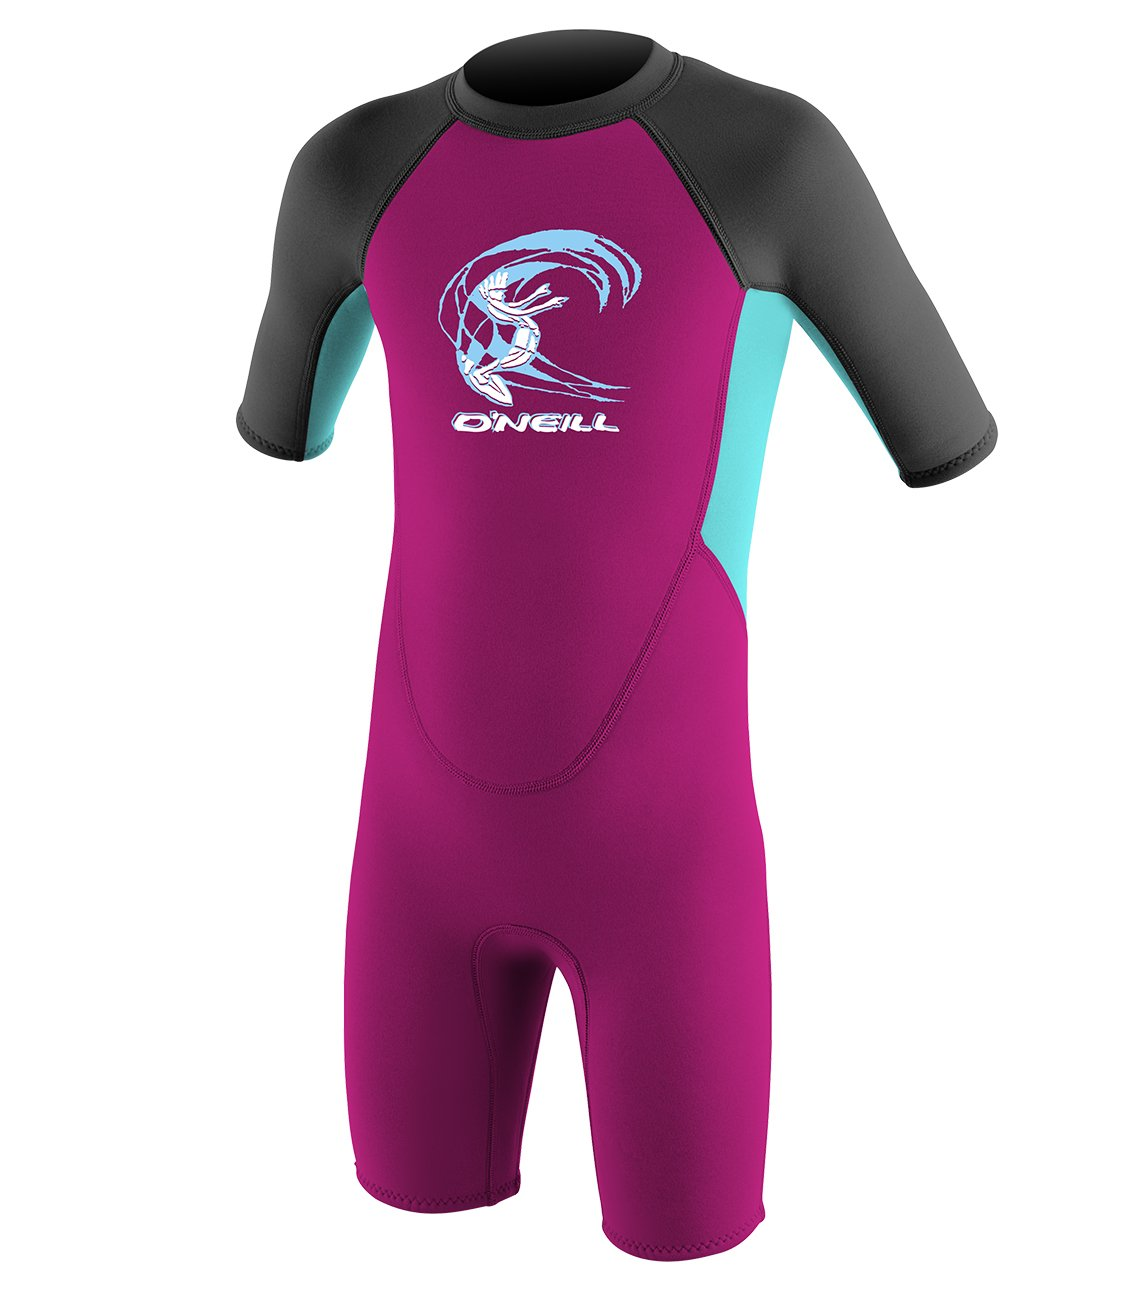 O'Neill Toddler Reactor-2 2mm Back Zip Short Sleeve Spring Wetsuit, Berry/Aqua/Graphite, 2 by O'Neill Wetsuits